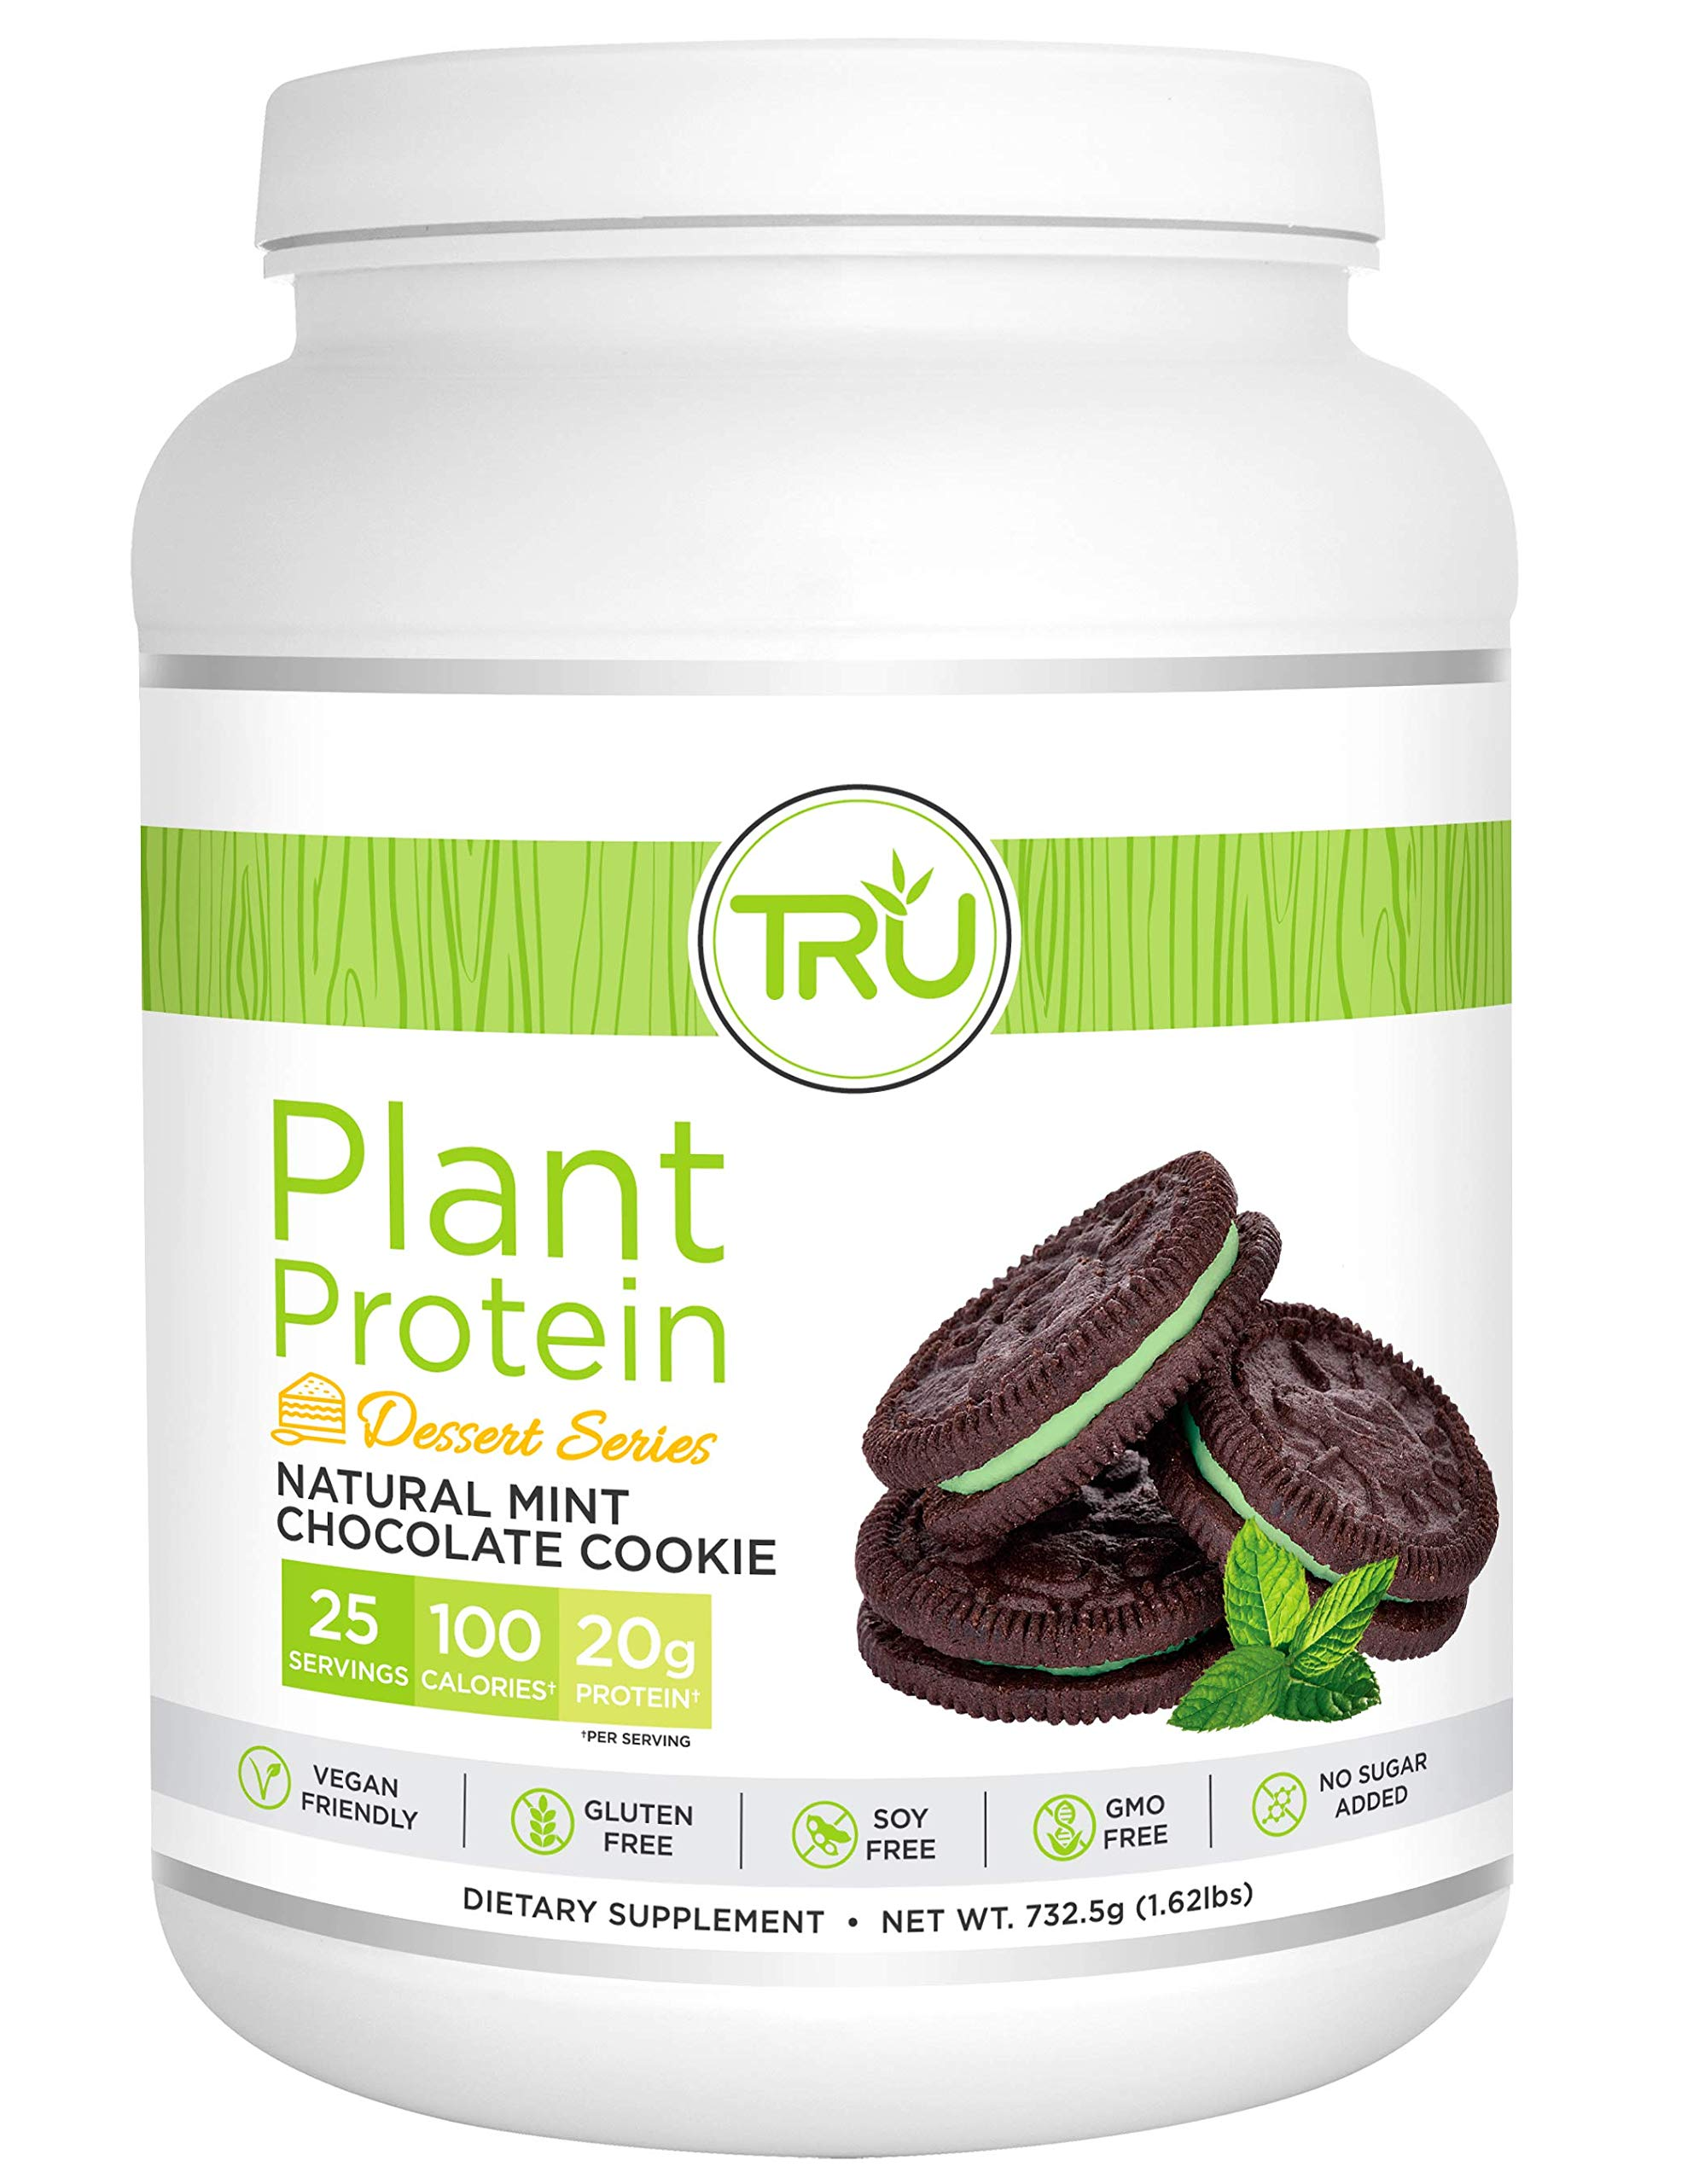 Tru Protein Mint Chocolate Chip Cookie - 25 Serving - Natural Plant Based Protein